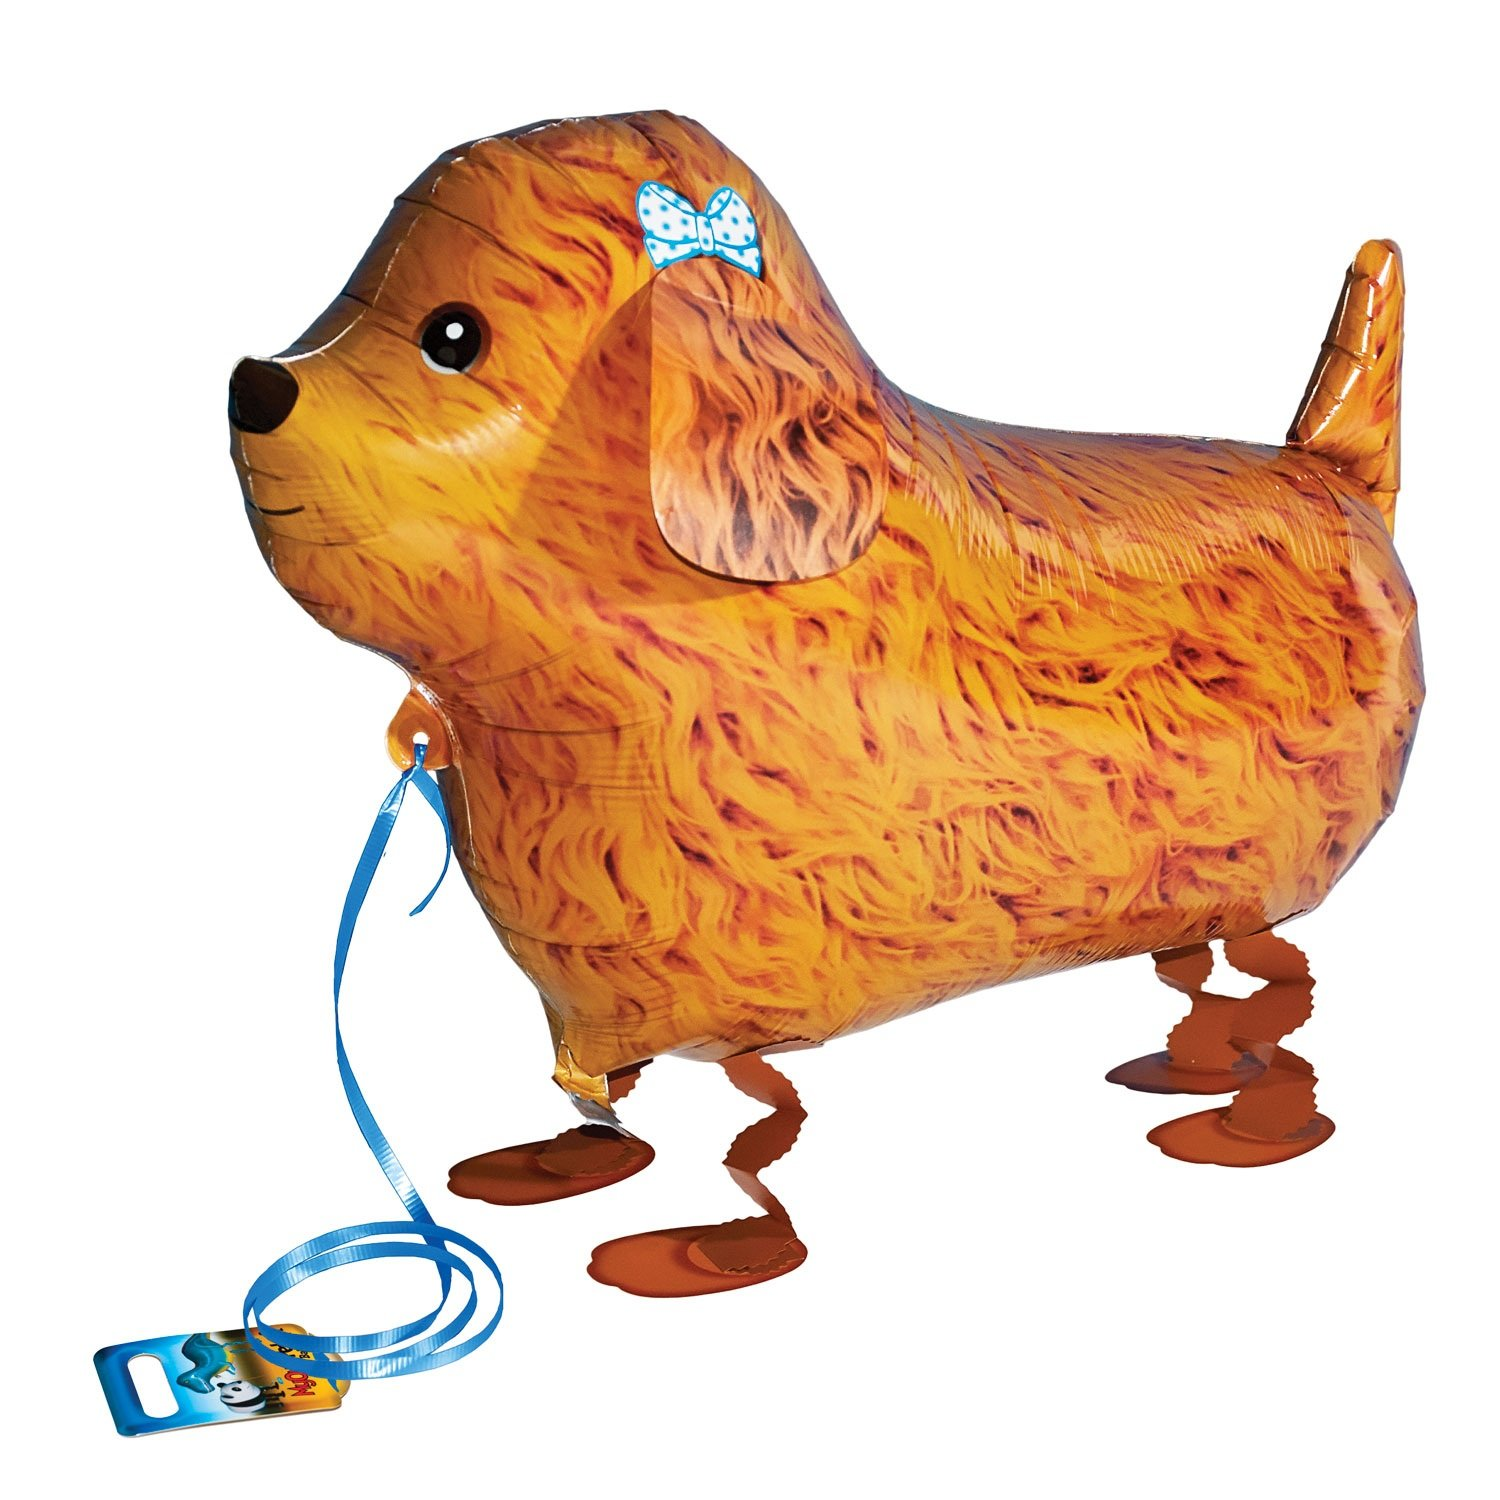 My Own Pet Balloons Toy Poodle Domestic Animal by My Own Pet Balloons